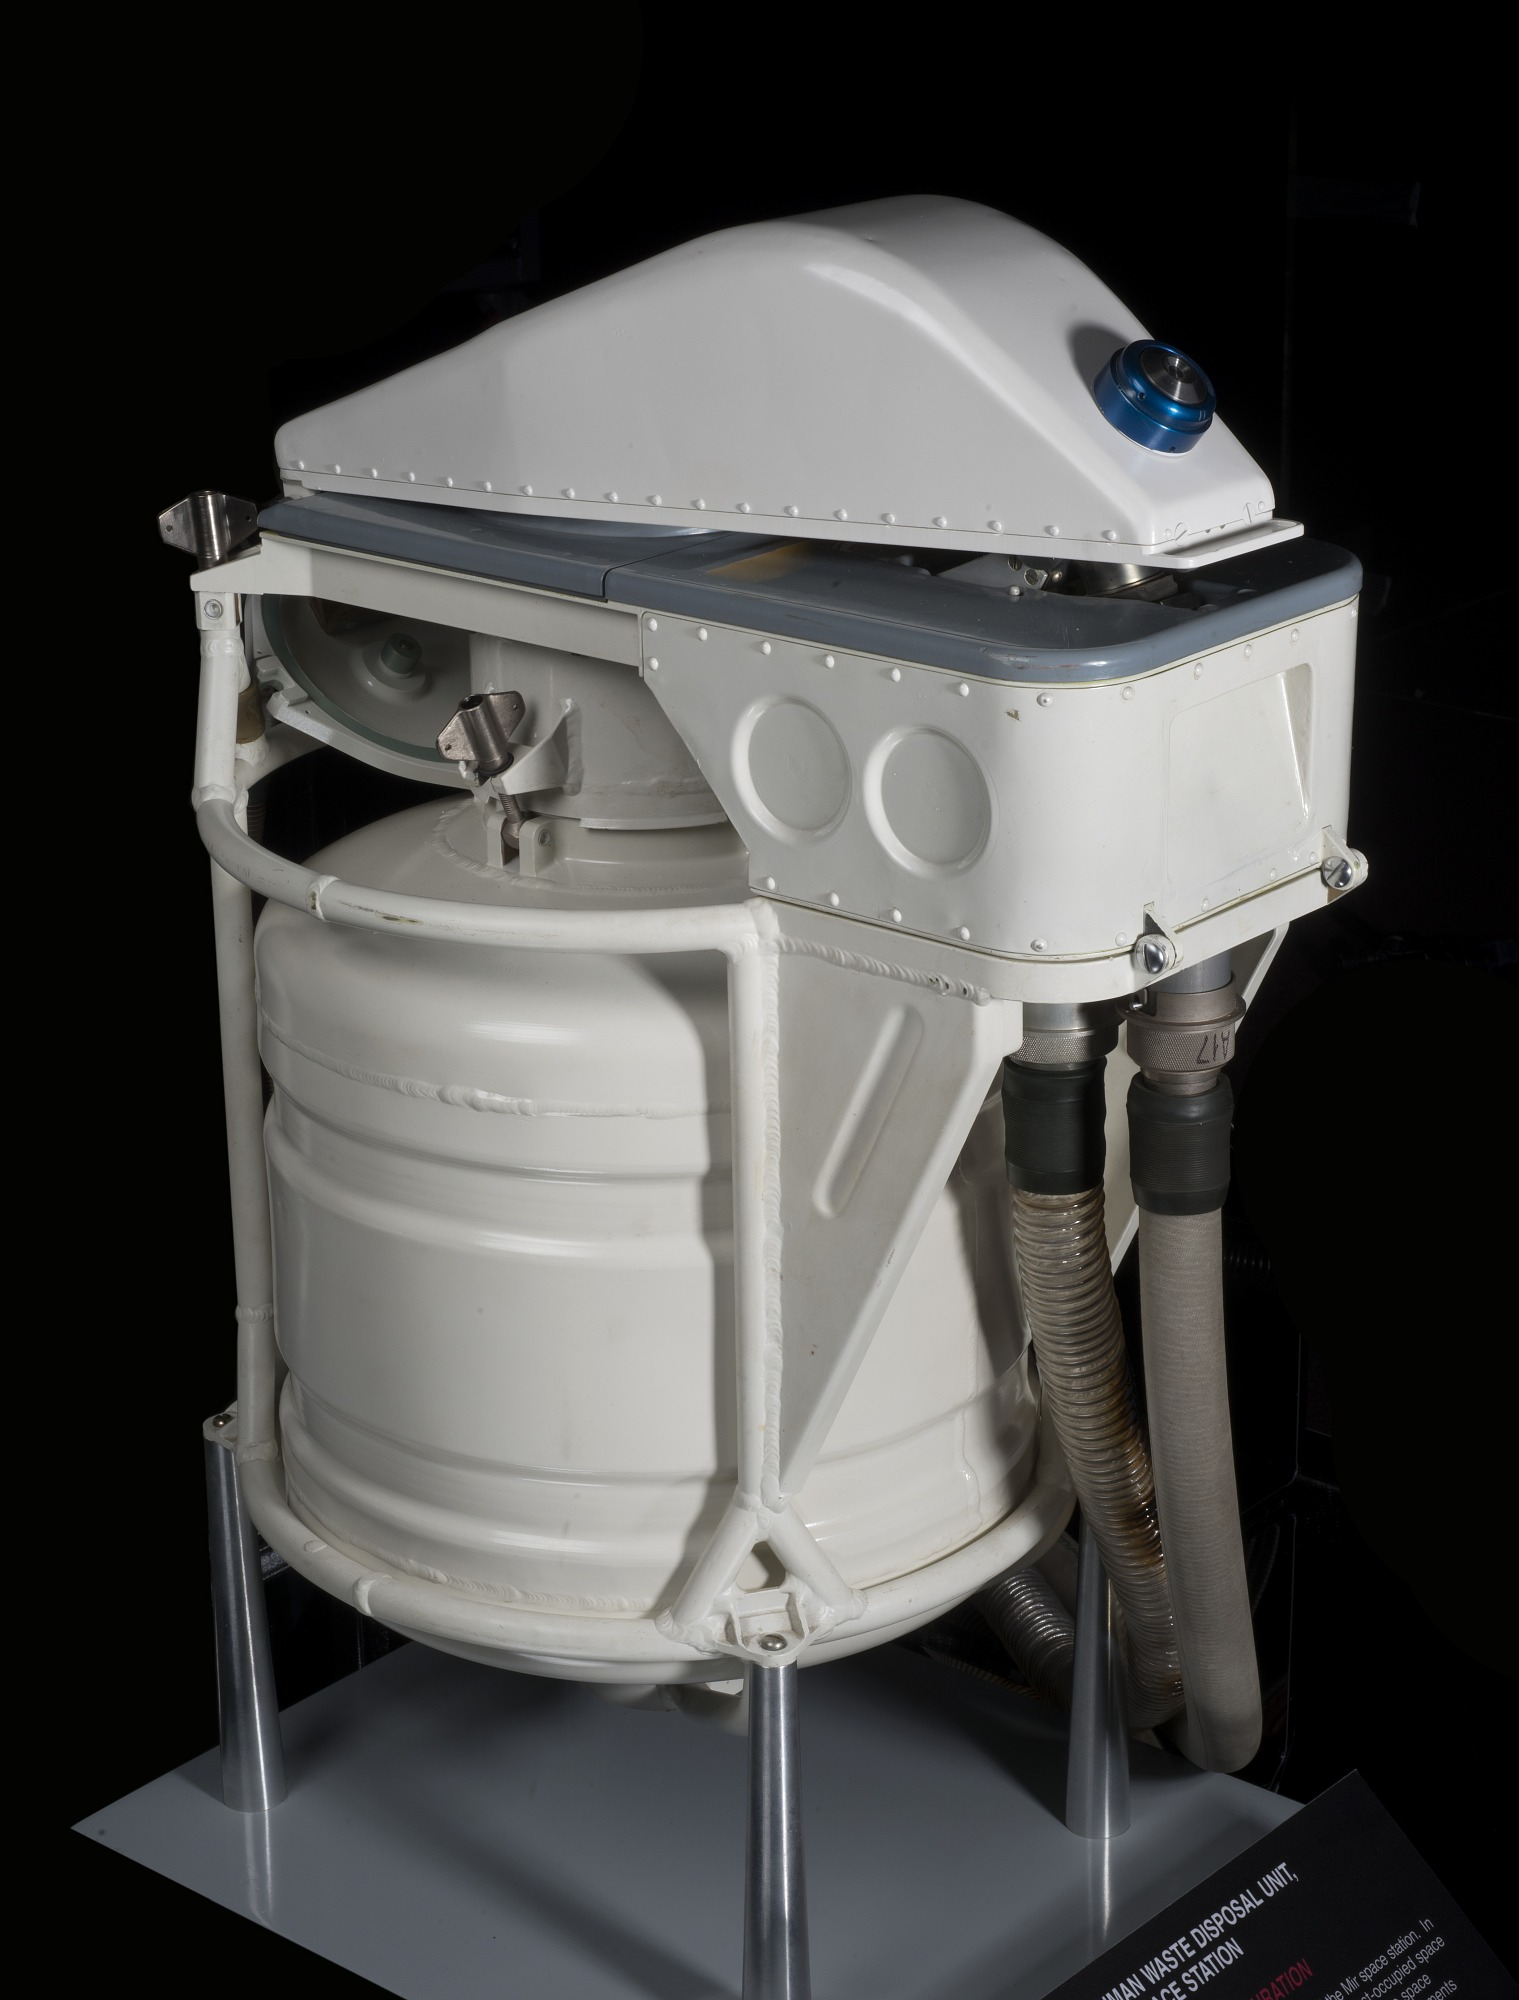 Image of : Human Waste Disposal Unit, Mir Space Station, Female Configuration